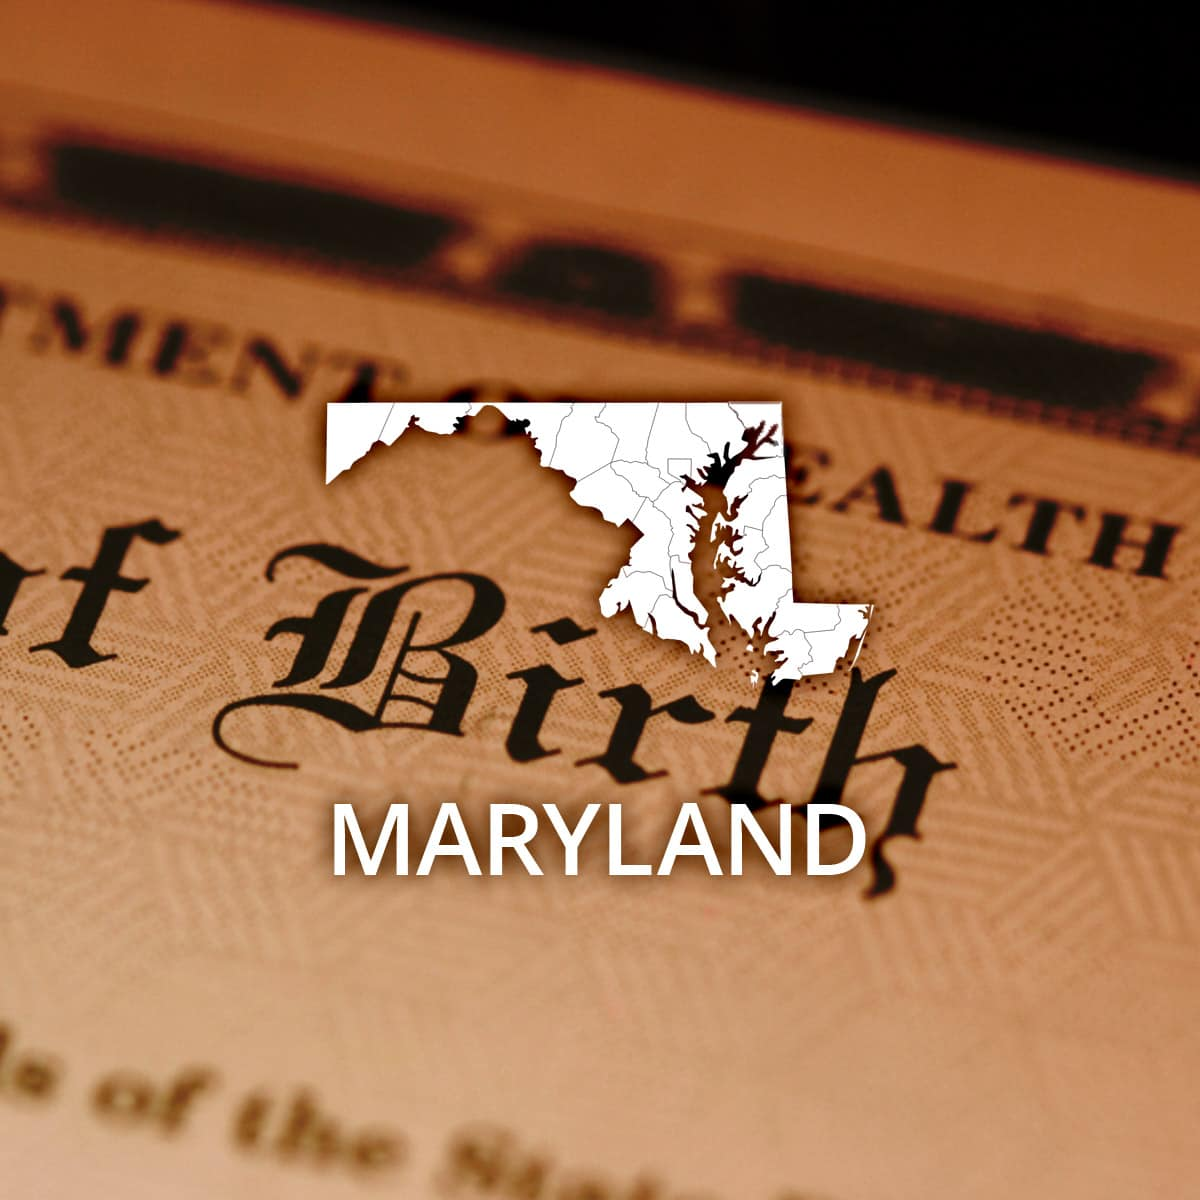 Where to Obtain a Maryland Birth Certificate